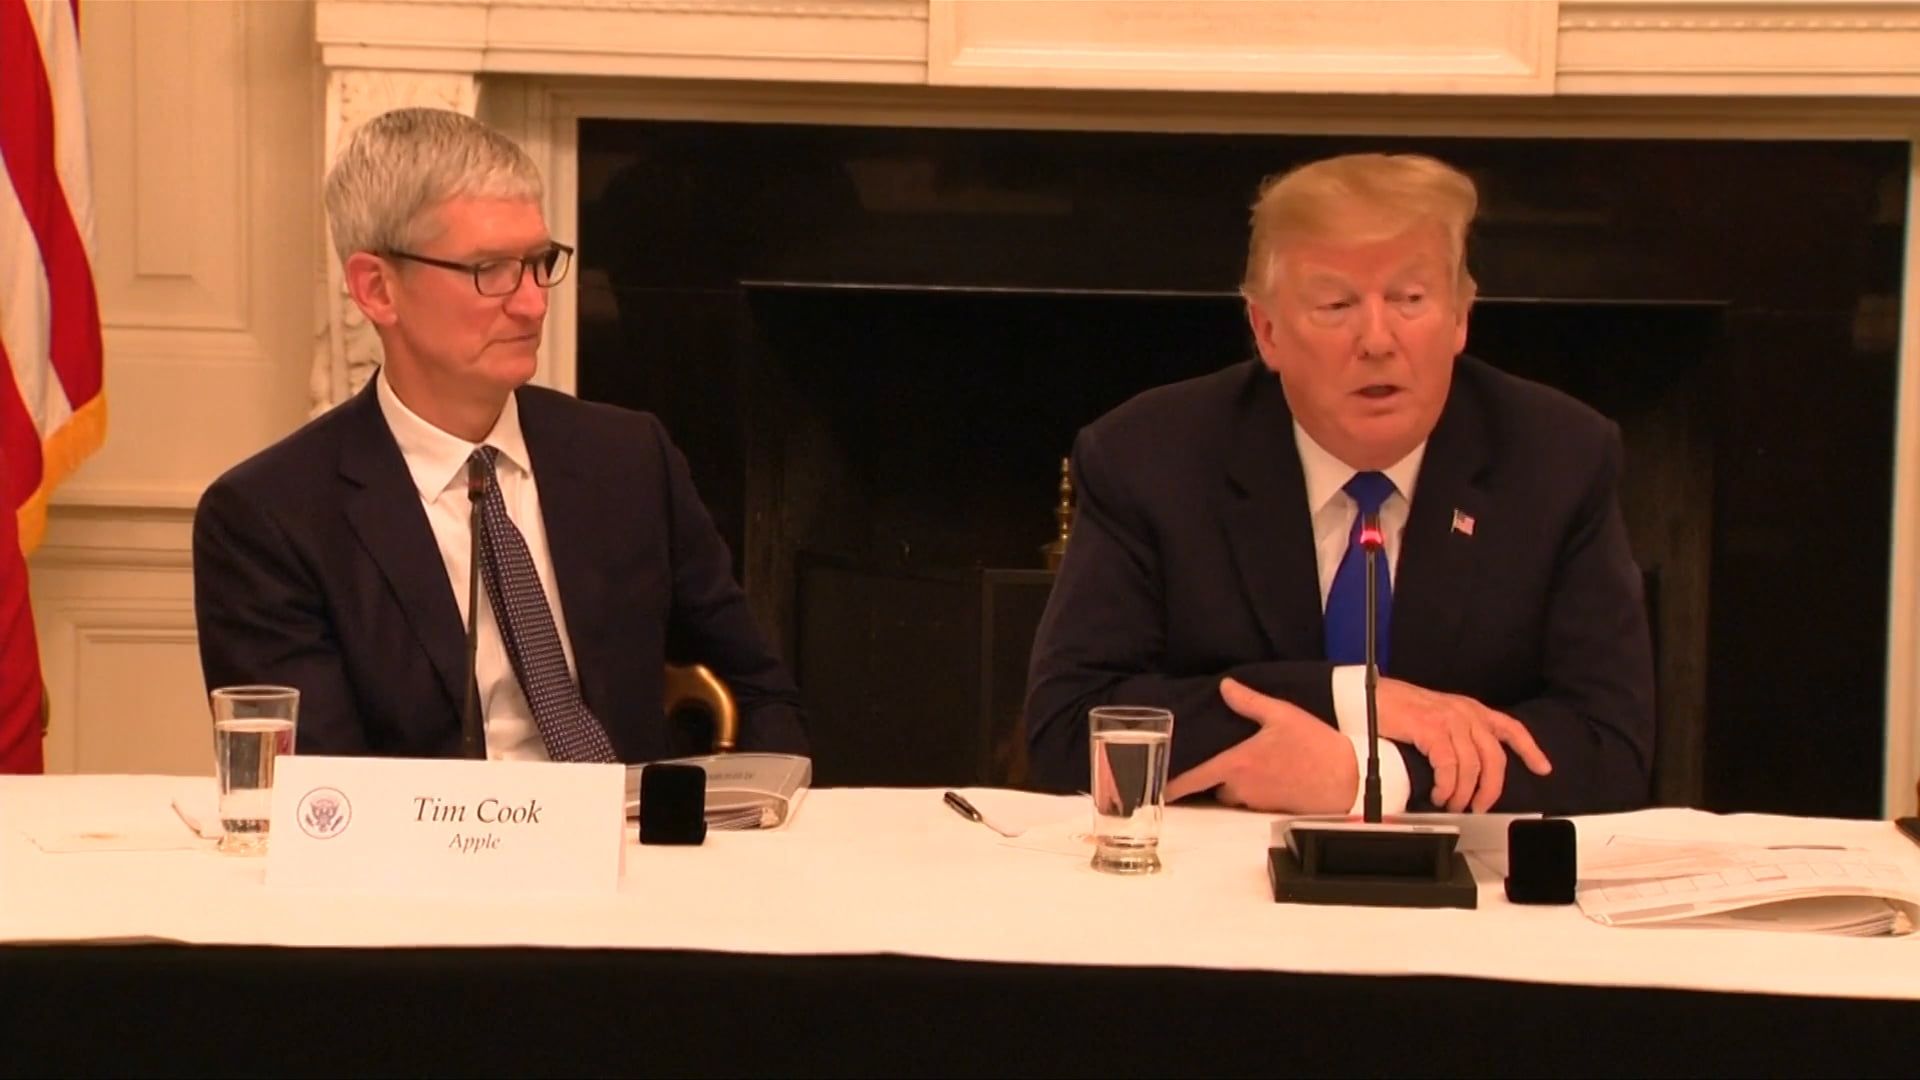 Tim Cook already has the iPhone X and he let it out… accidentally